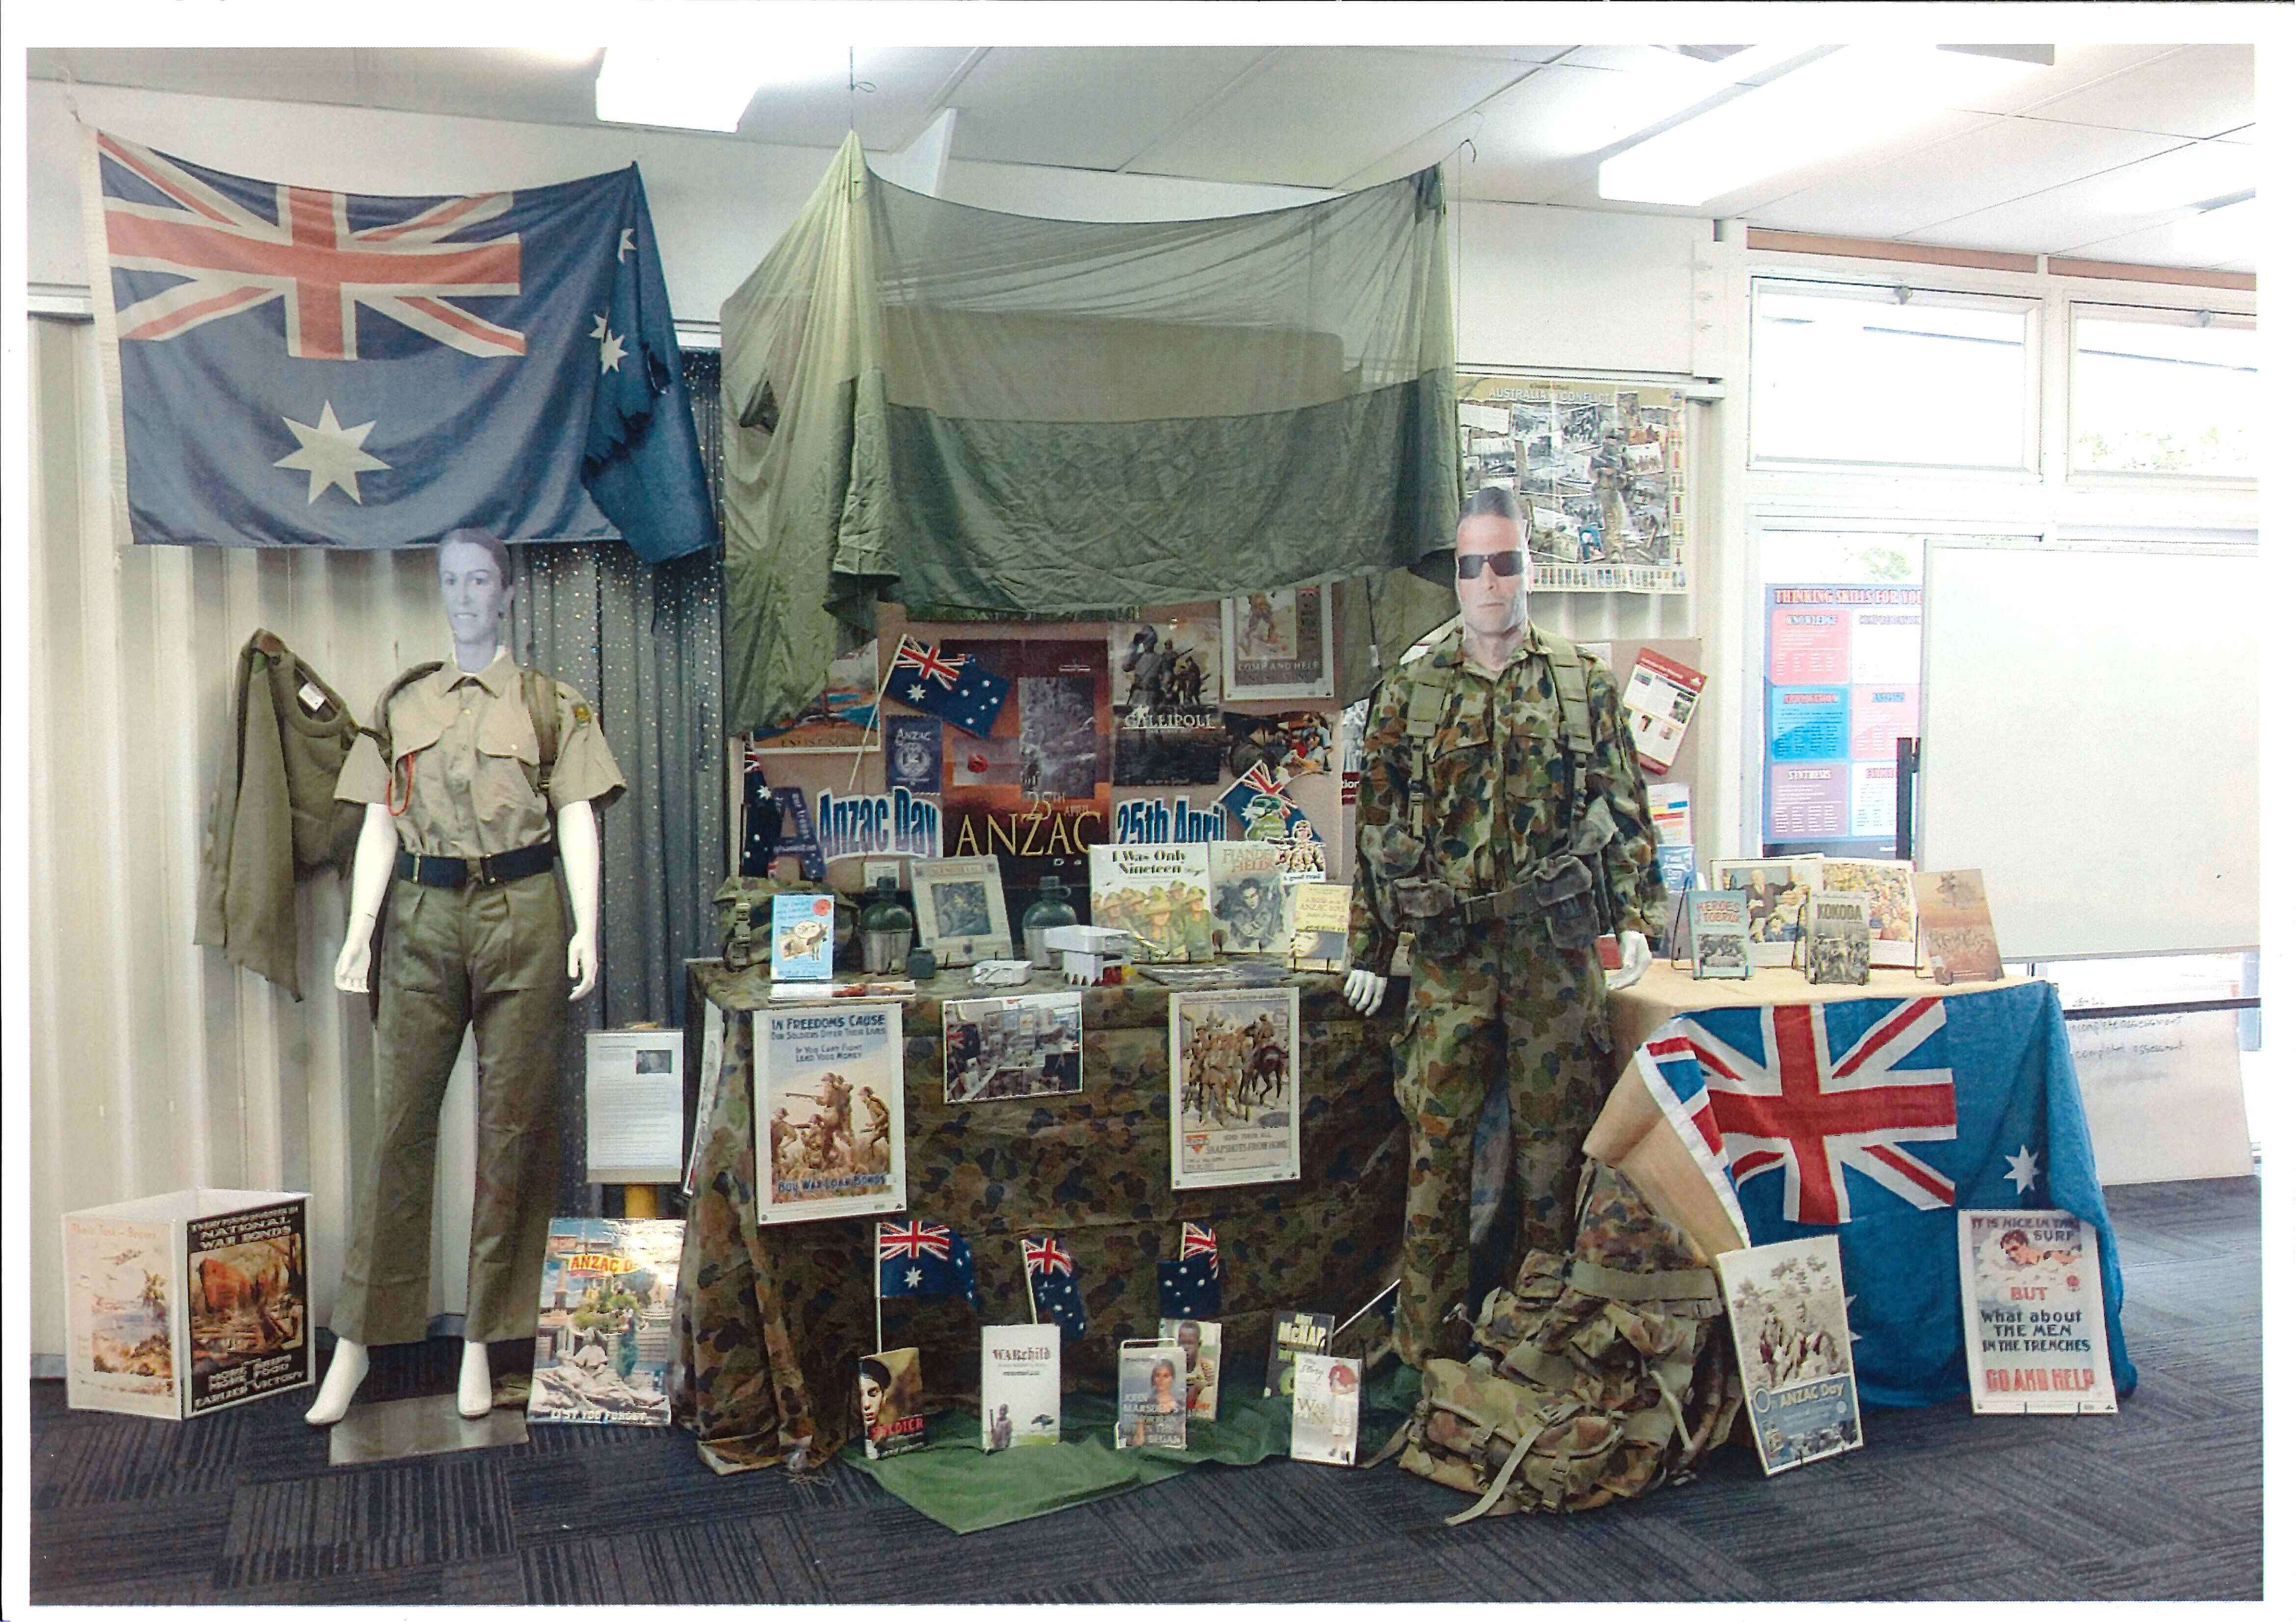 ANZAC-themed library display by Redbank Plains State High School, Queensland, Australia.